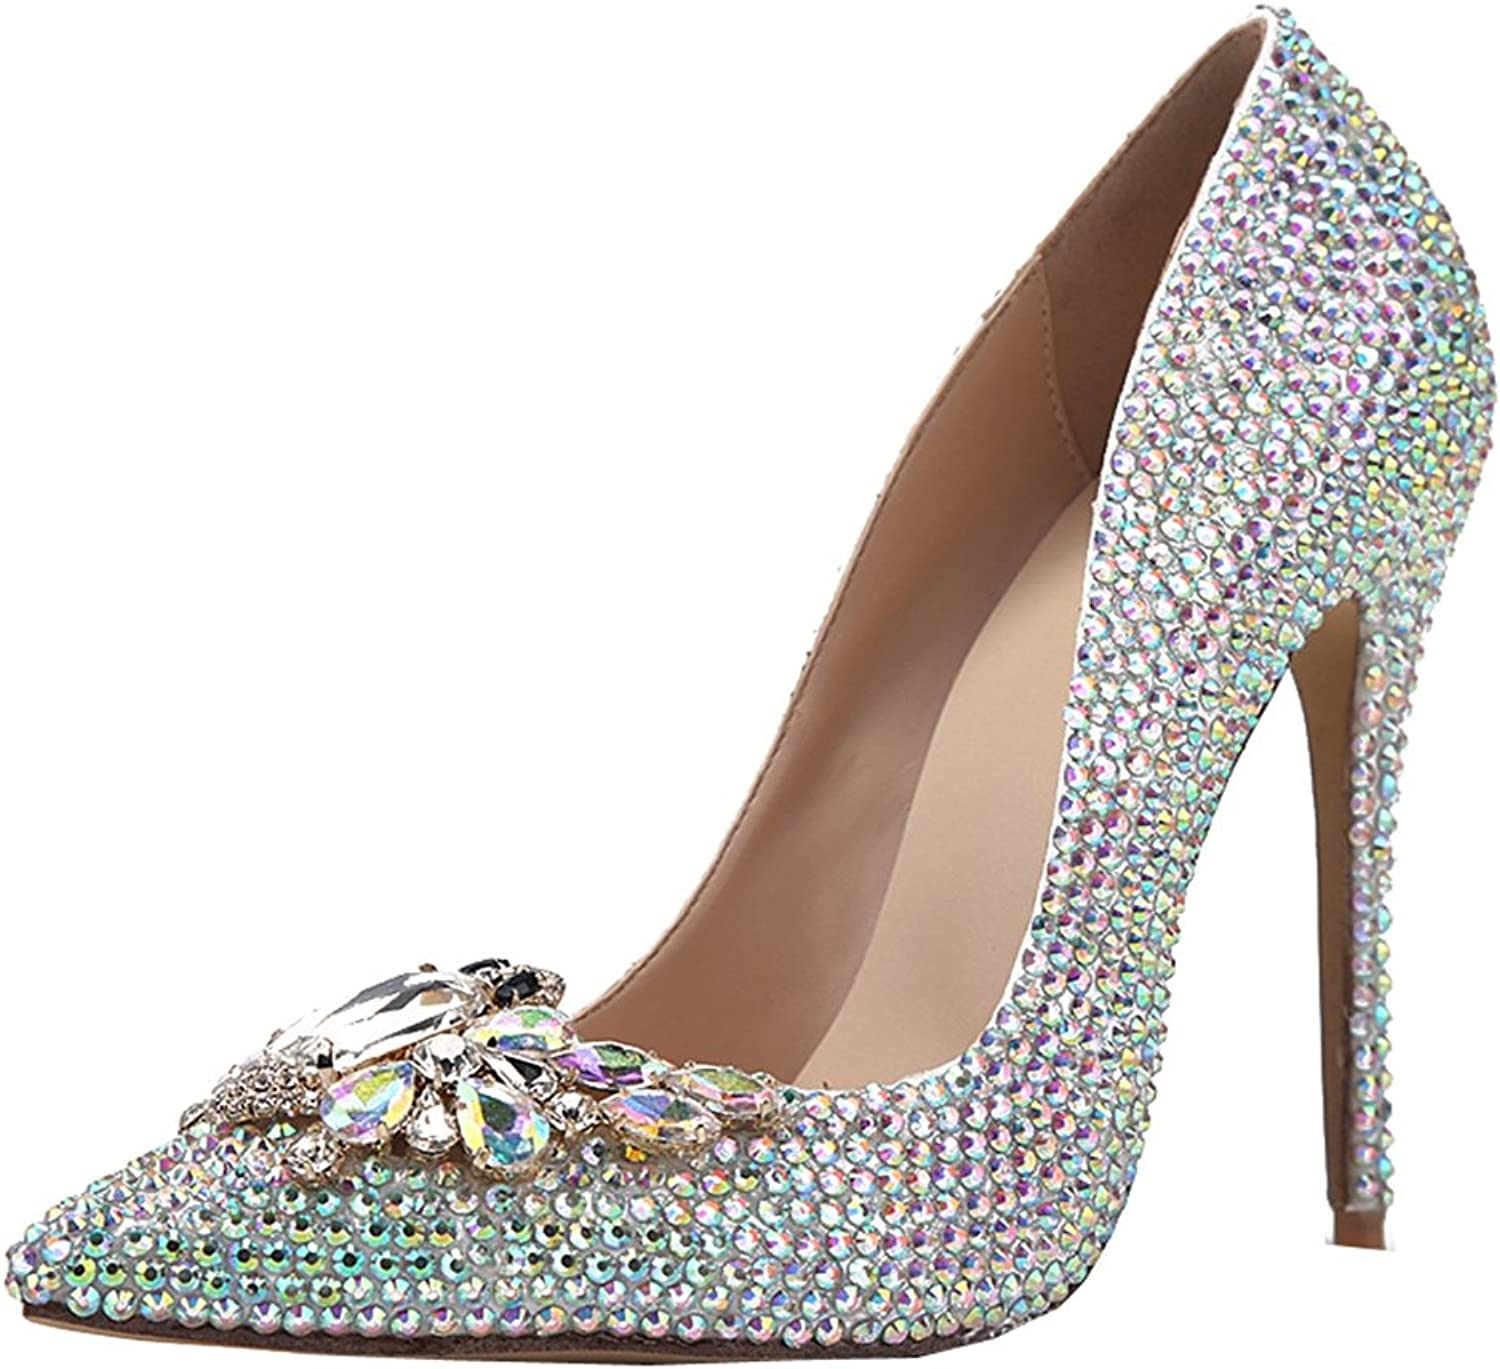 TDA Women's Pointed Toe Butterfly Dazzling Rhinestones Patent Leather Evening Party Dress Sexy Stiletto shoes